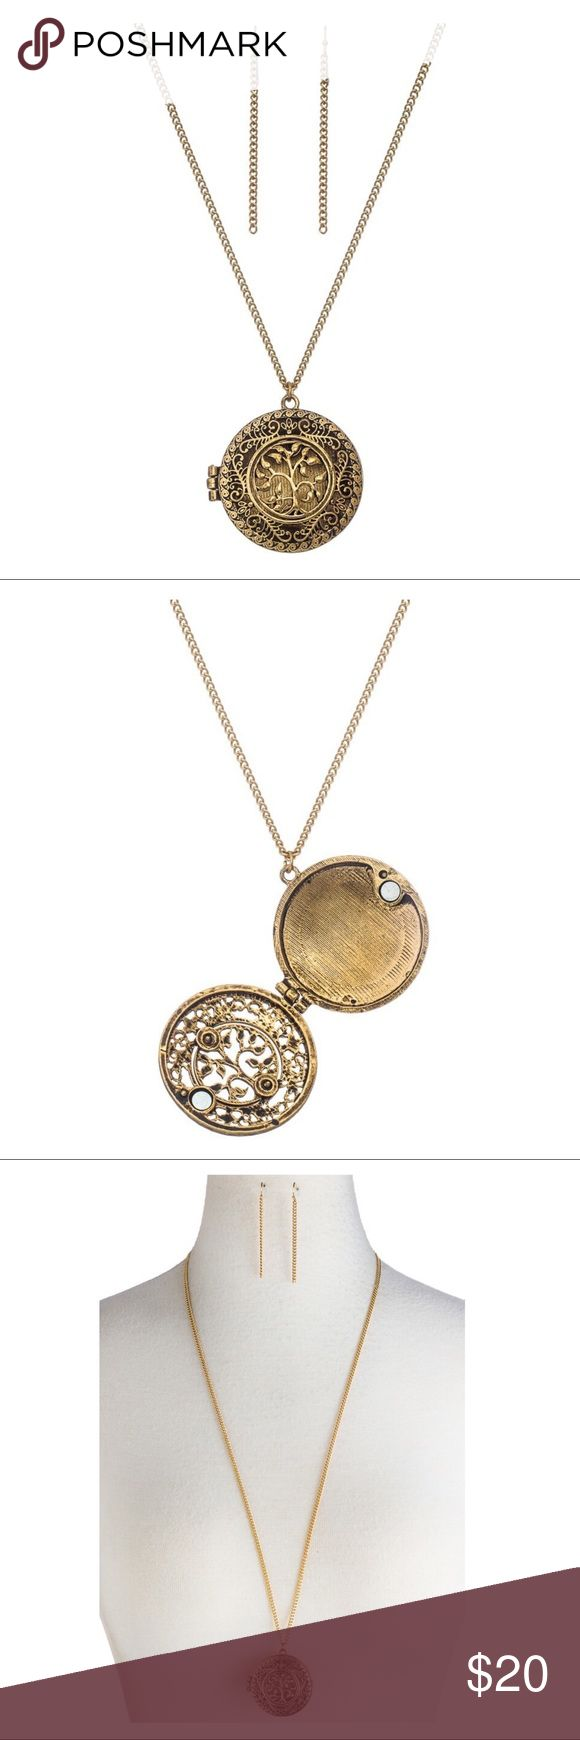 "Ornate Magnifying Glass Pendant Necklace Ornate Magnifying Glass Pendant Necklace. Length 30"" with 3 extender. ⭐️PRICE FIRM ⭐️BUNDLE&SAVE Jewelry Necklaces"